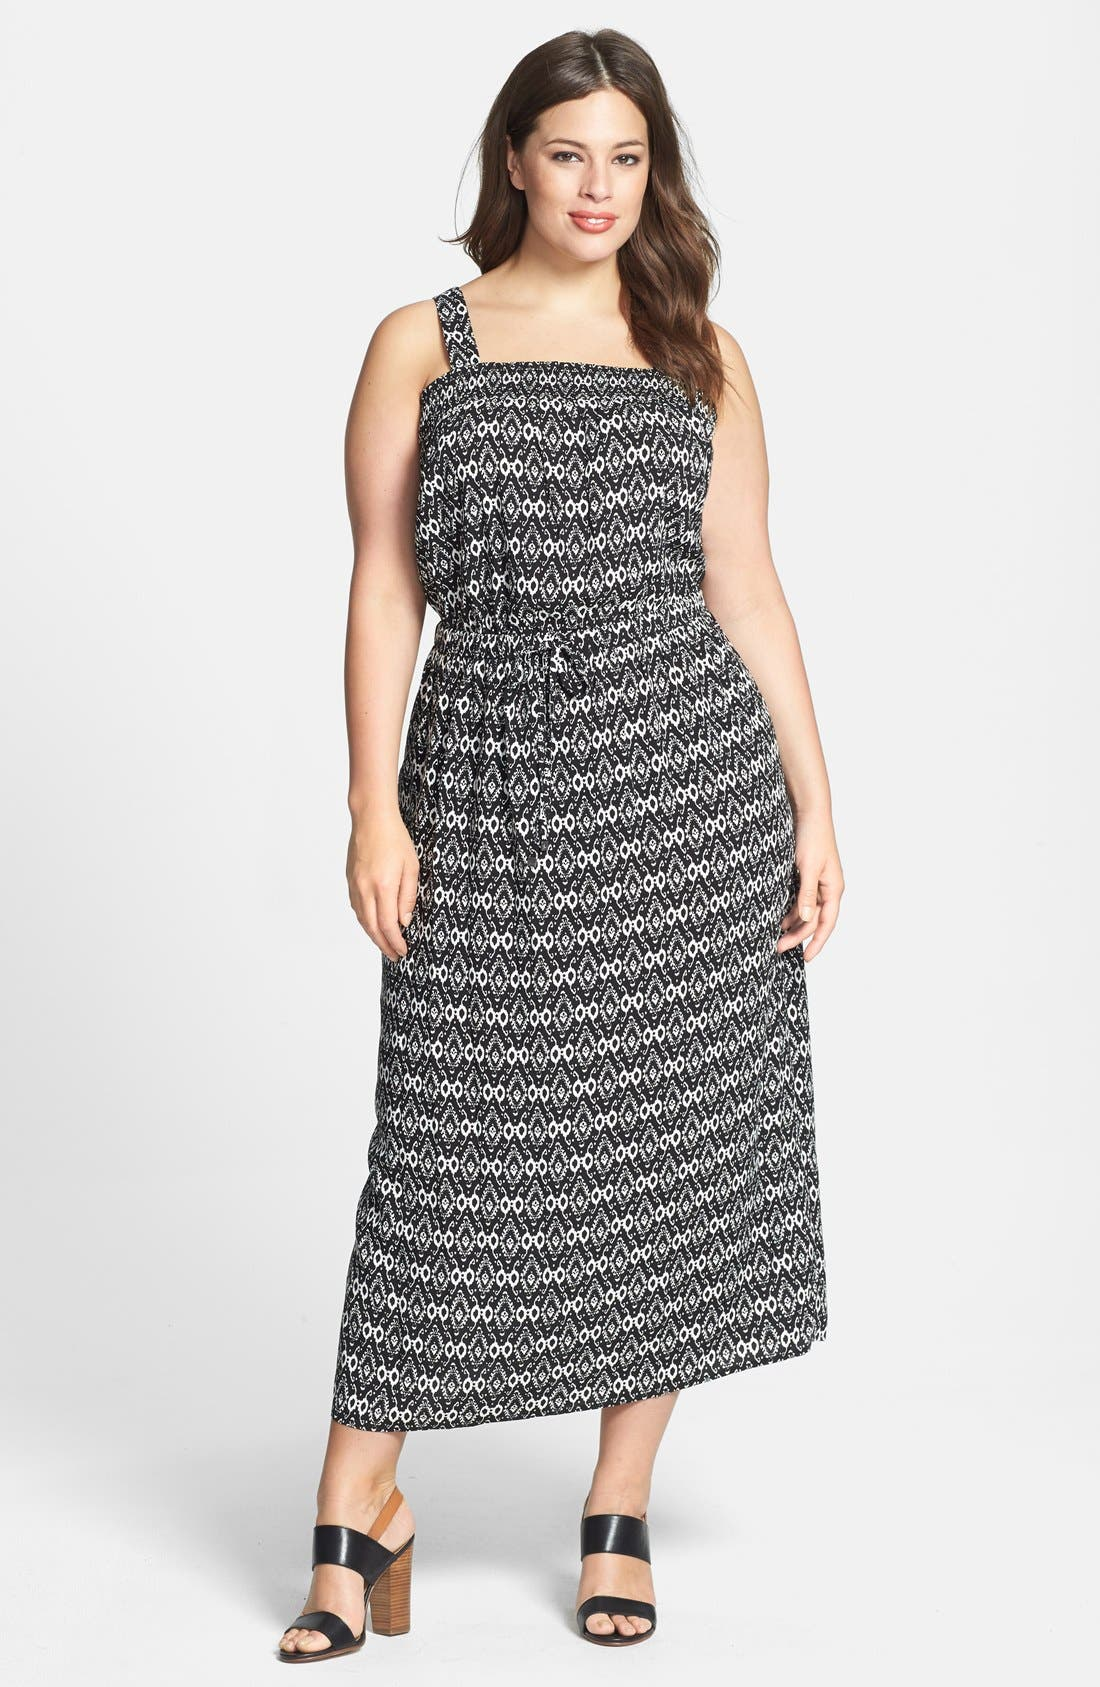 Main Image - Two by Vince Camuto 'Ancient Etchings' Tie Waist Maxi Dress (Plus Size)